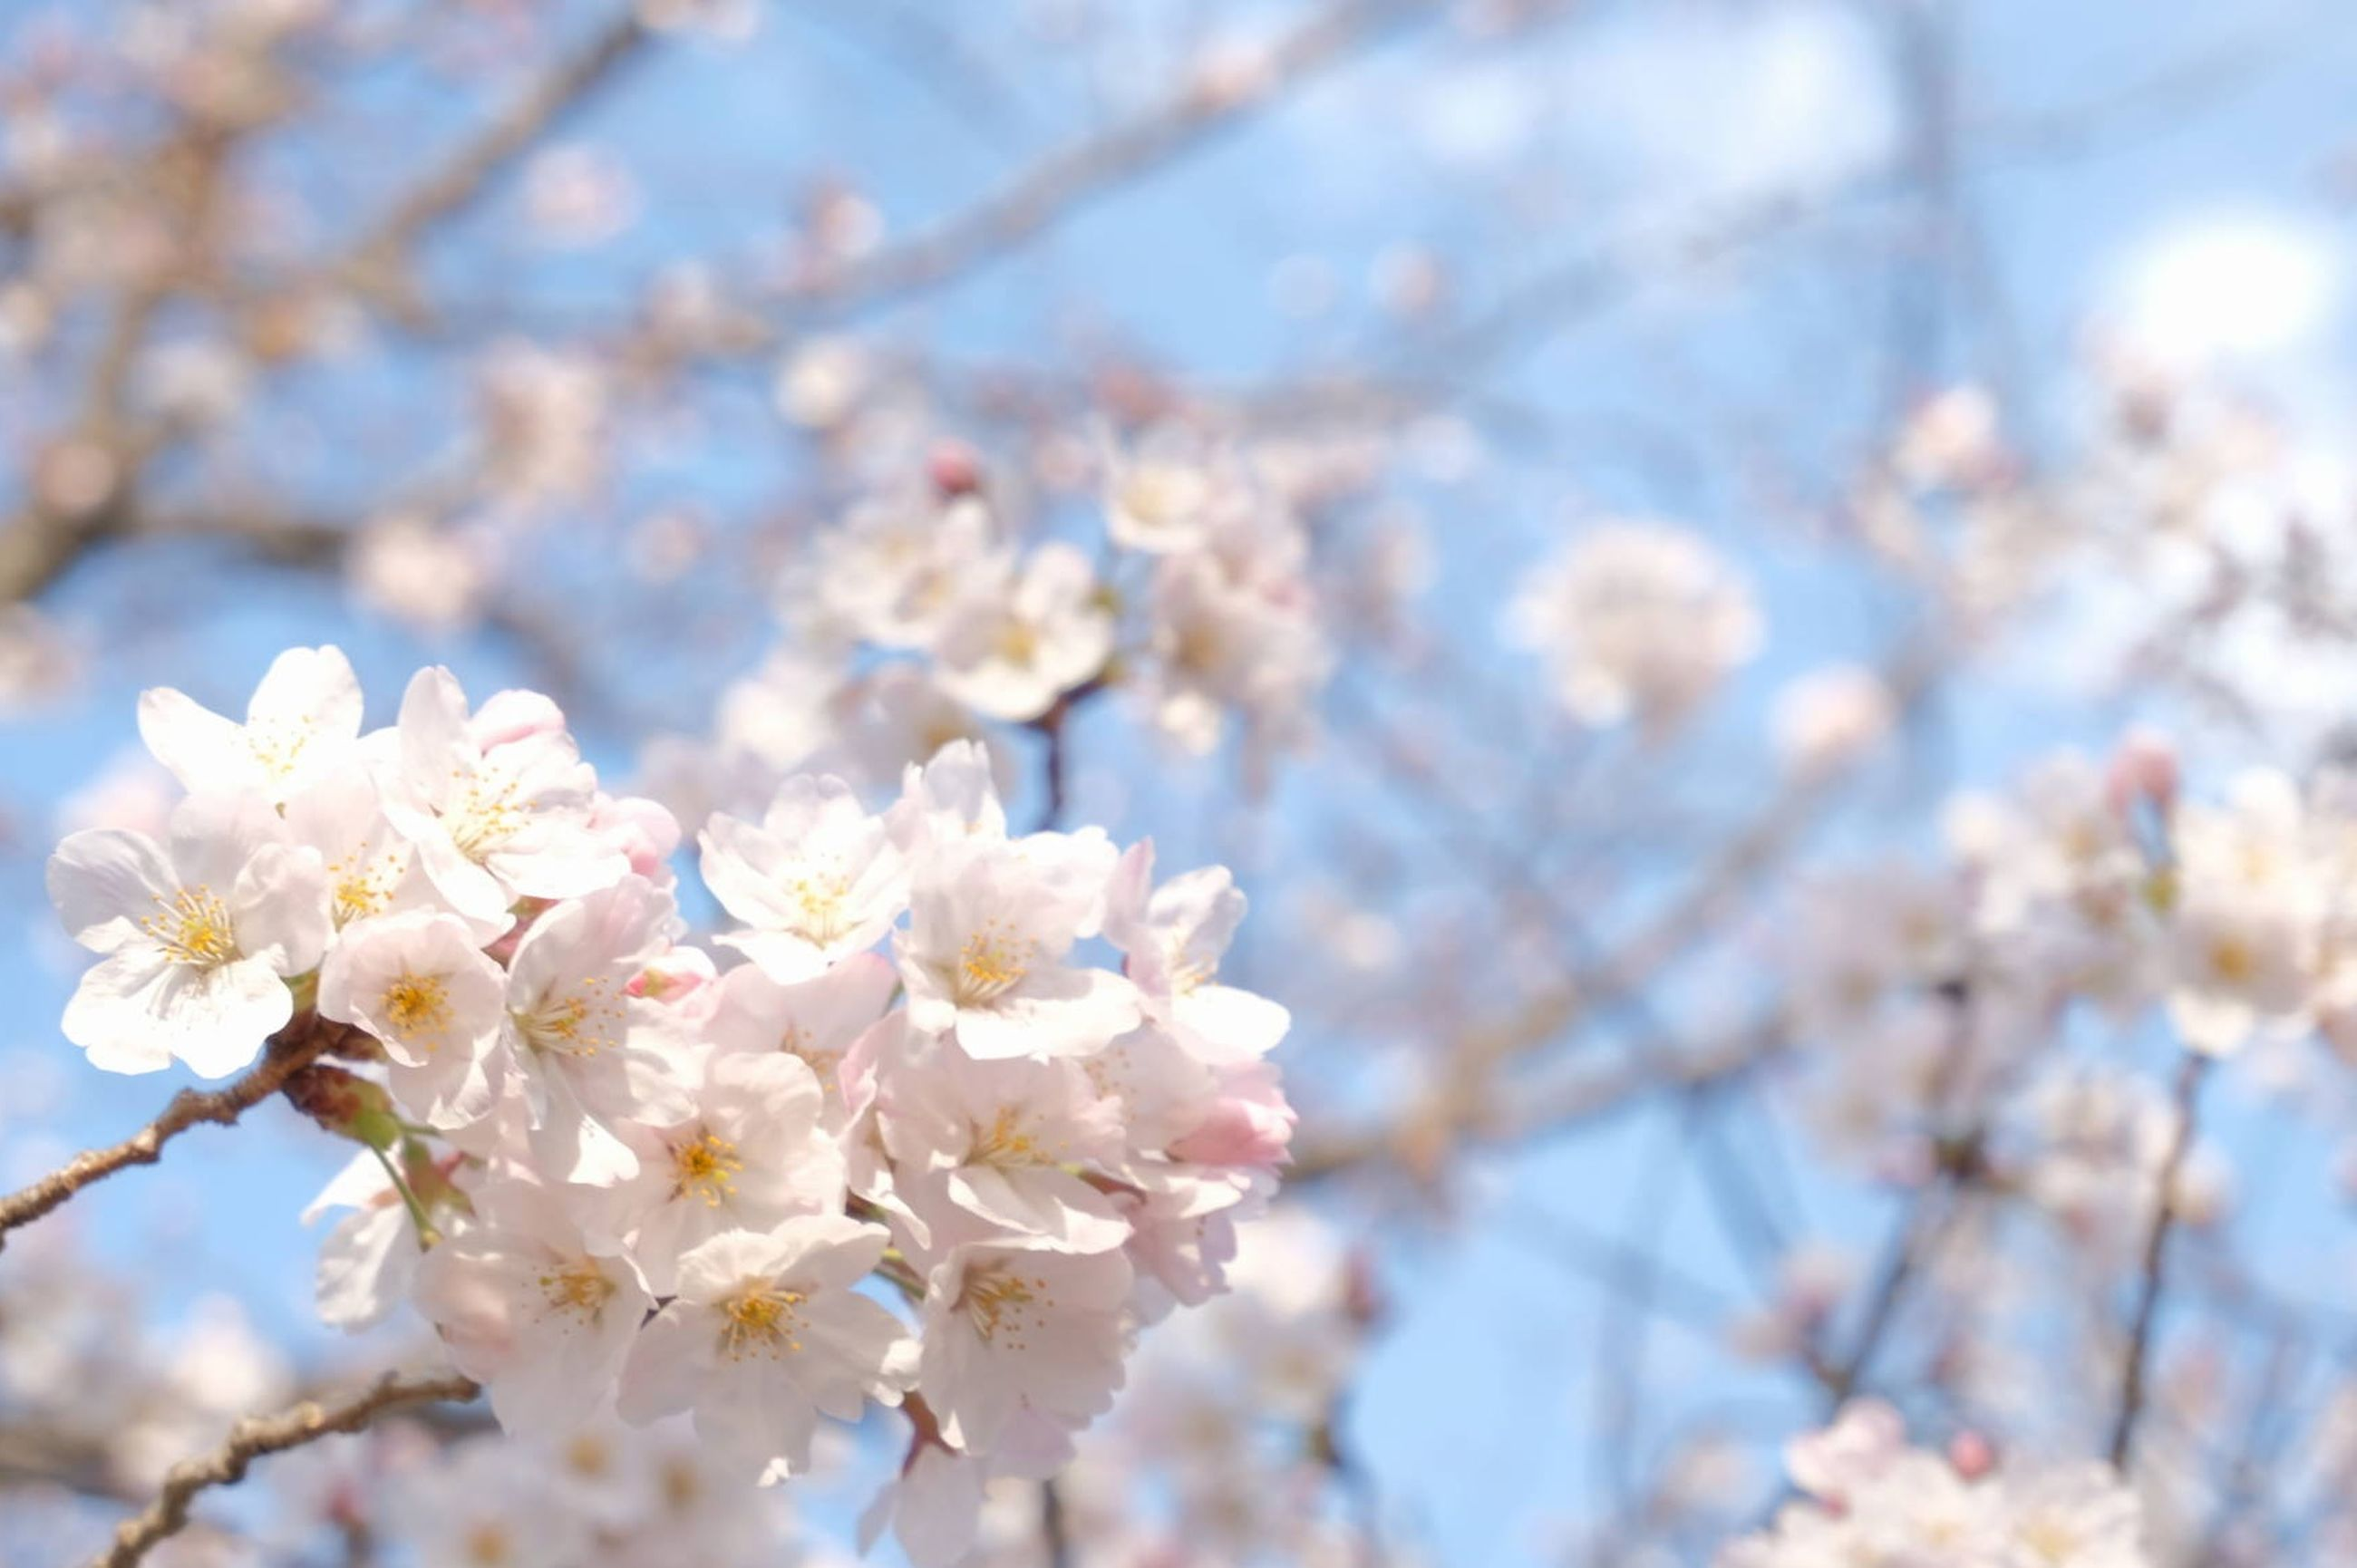 flower, flowering plant, plant, freshness, fragility, beauty in nature, blossom, growth, springtime, tree, vulnerability, branch, cherry blossom, nature, low angle view, day, close-up, no people, white color, petal, cherry tree, flower head, outdoors, spring